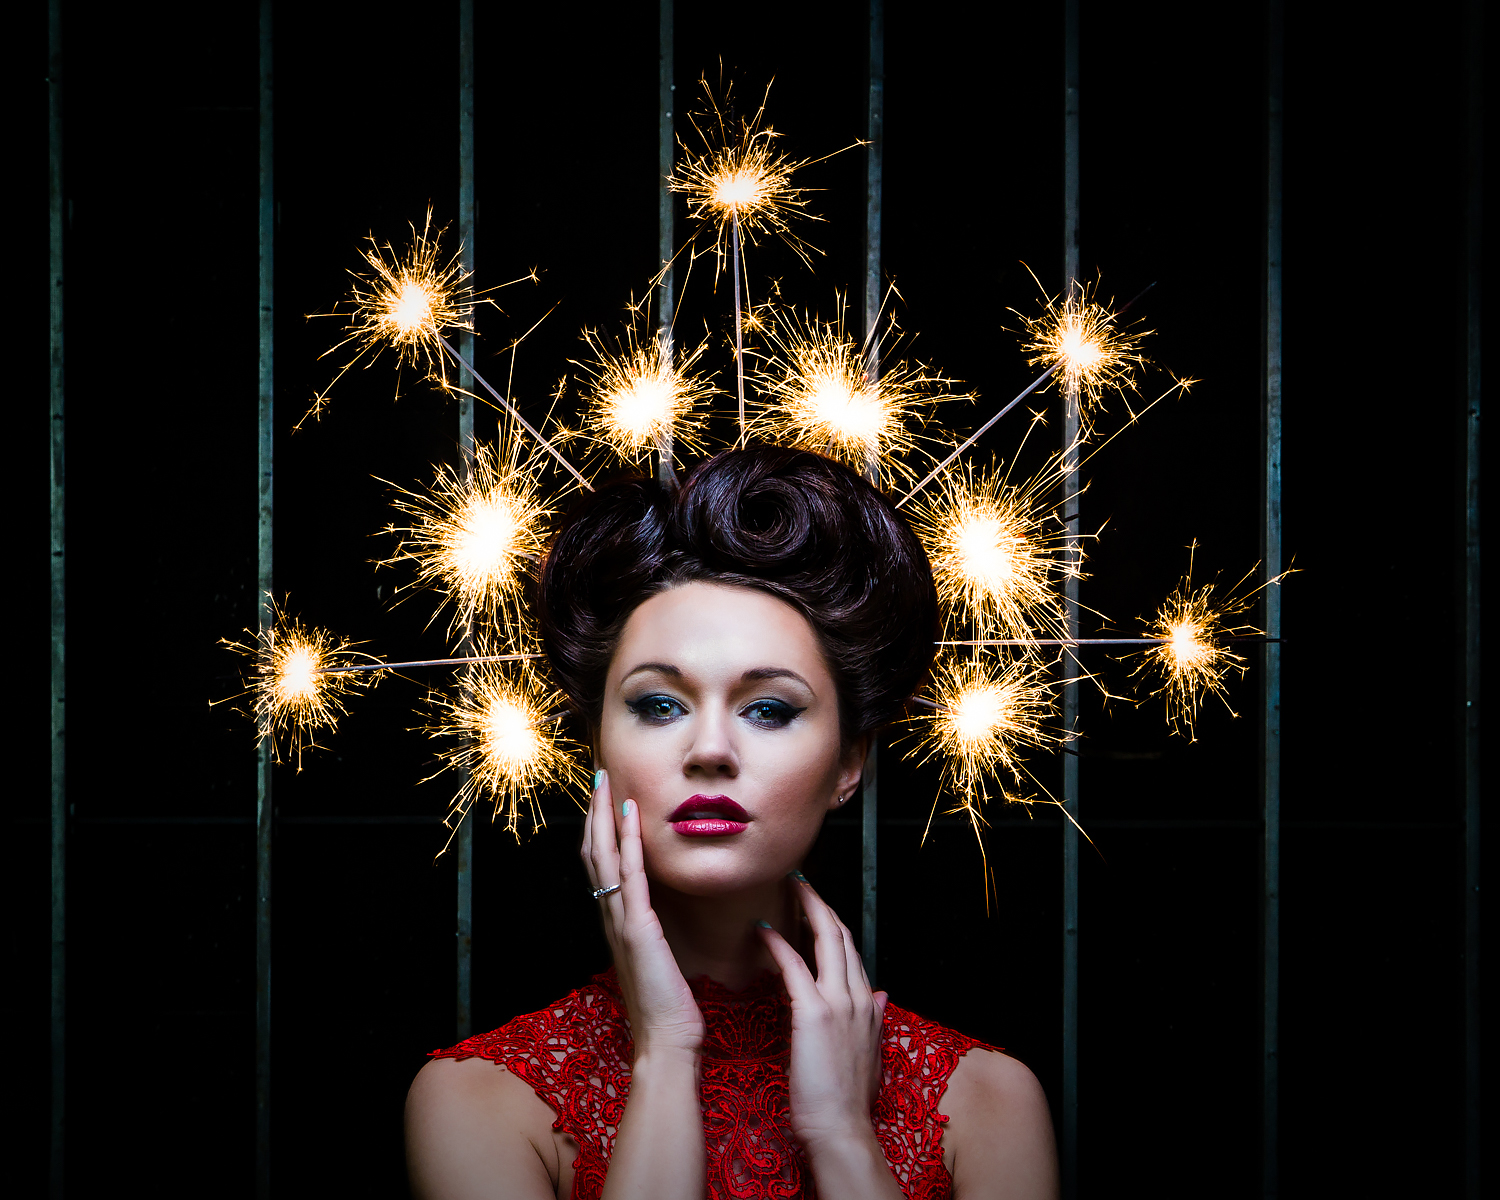 Fashion portrait with sparklers burning in models hair